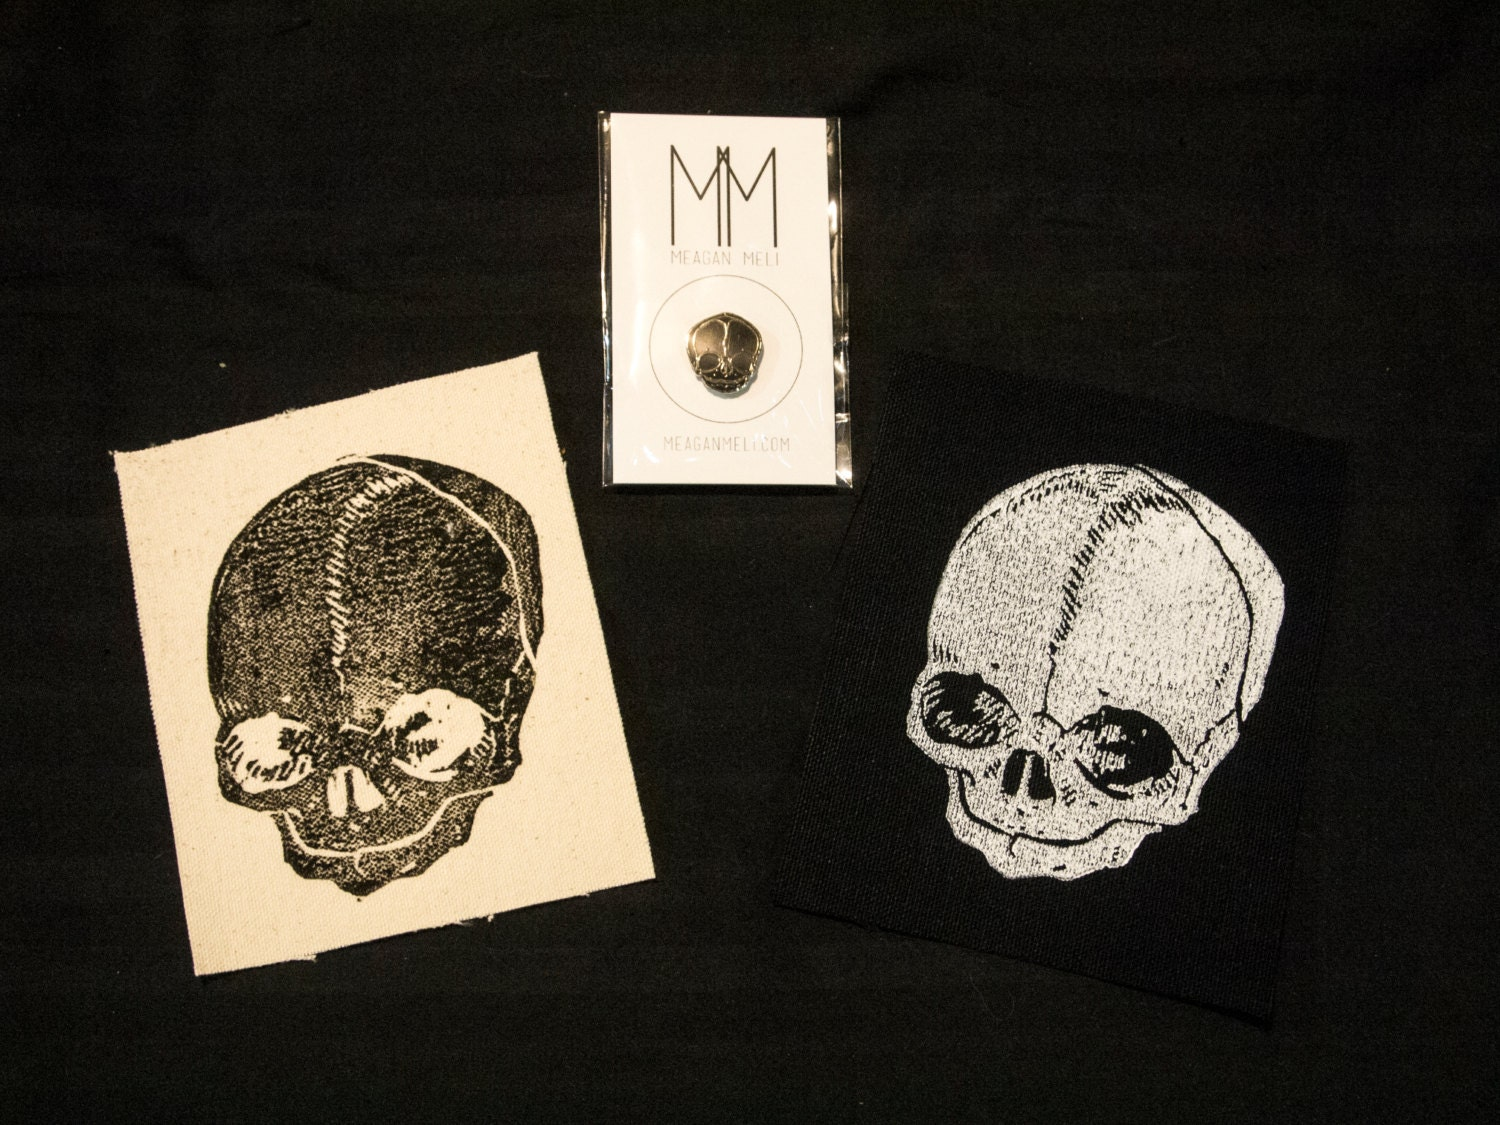 Fetal Skull Pin, Patch, or Print Combo!